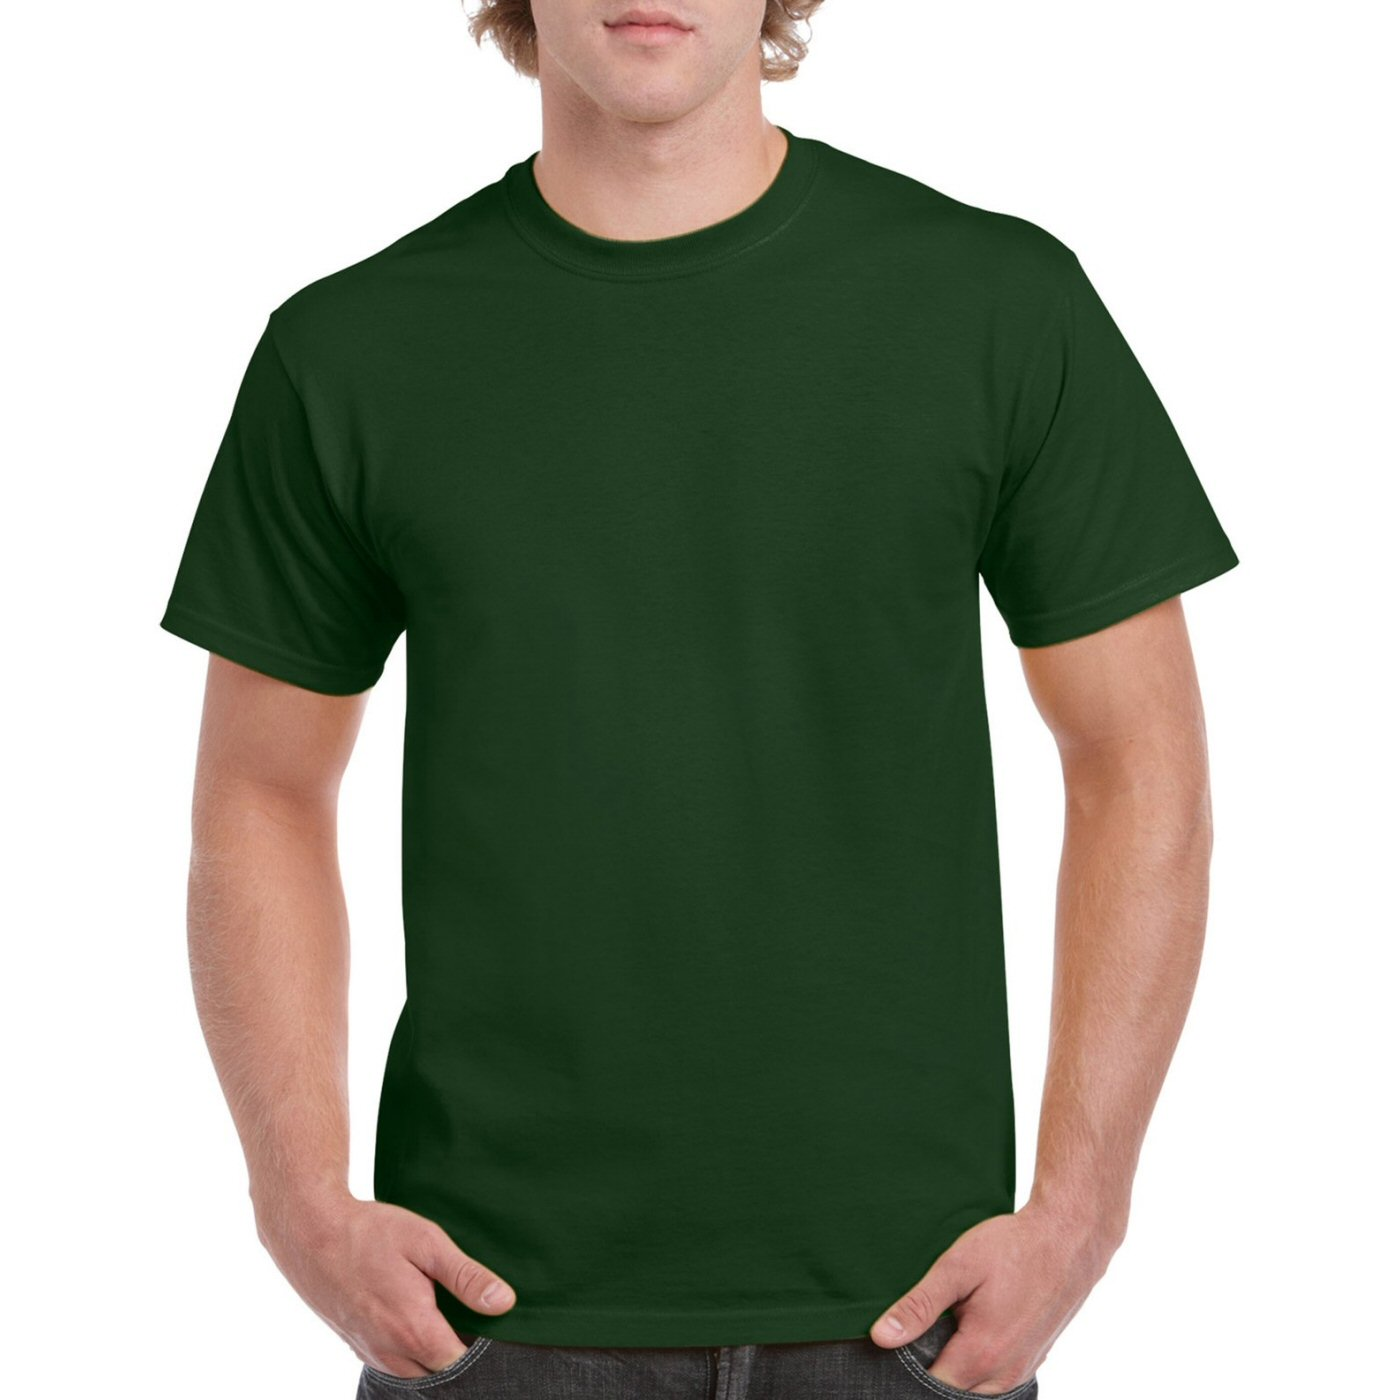 Bottle Green Plain Round Neck T-shirt image